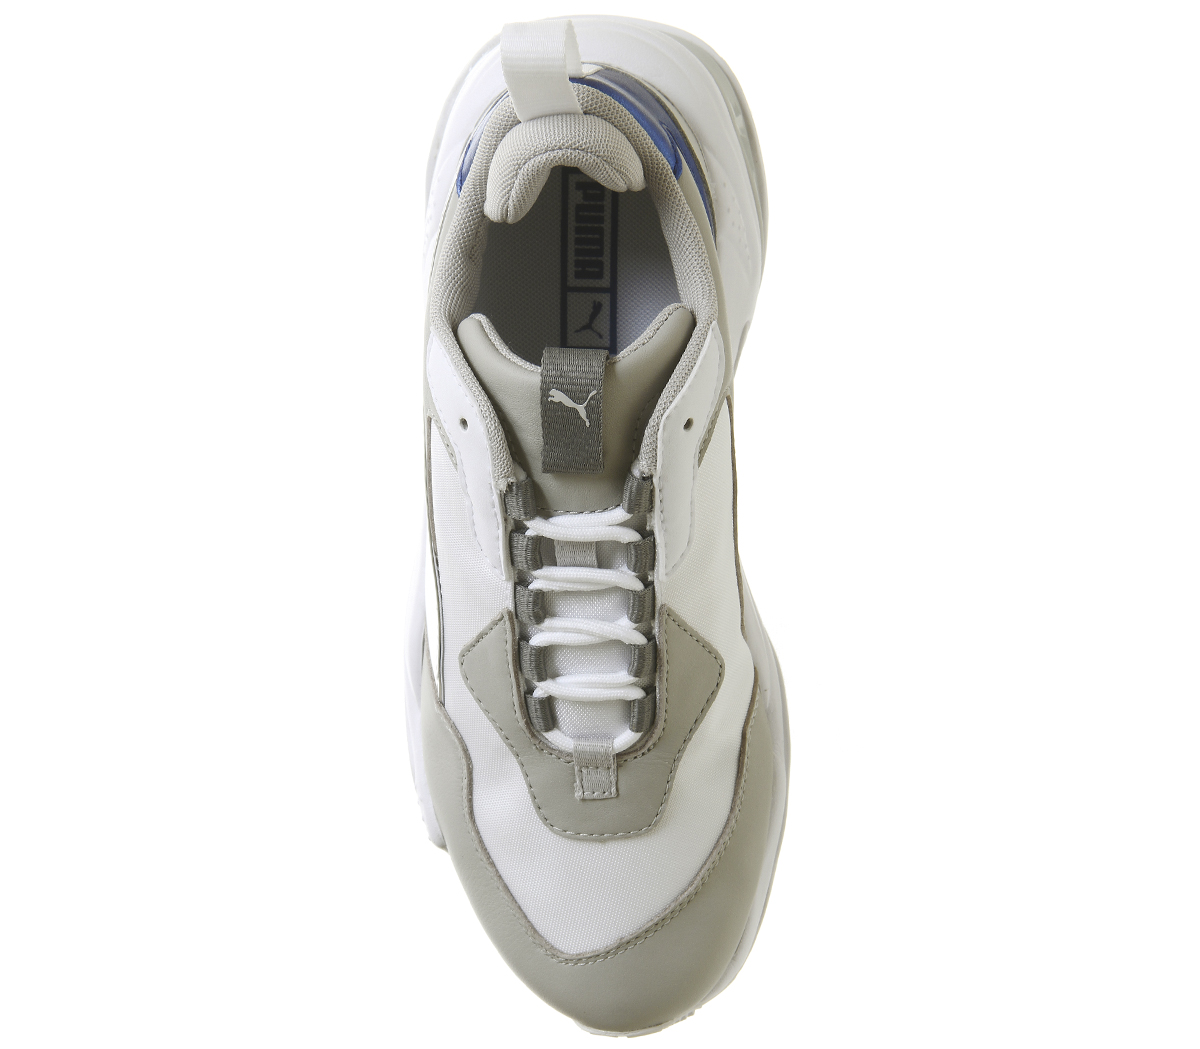 0861de2a1463 Womens Puma Thunder Electric Trainers Puma White Grey Violet Puma ...